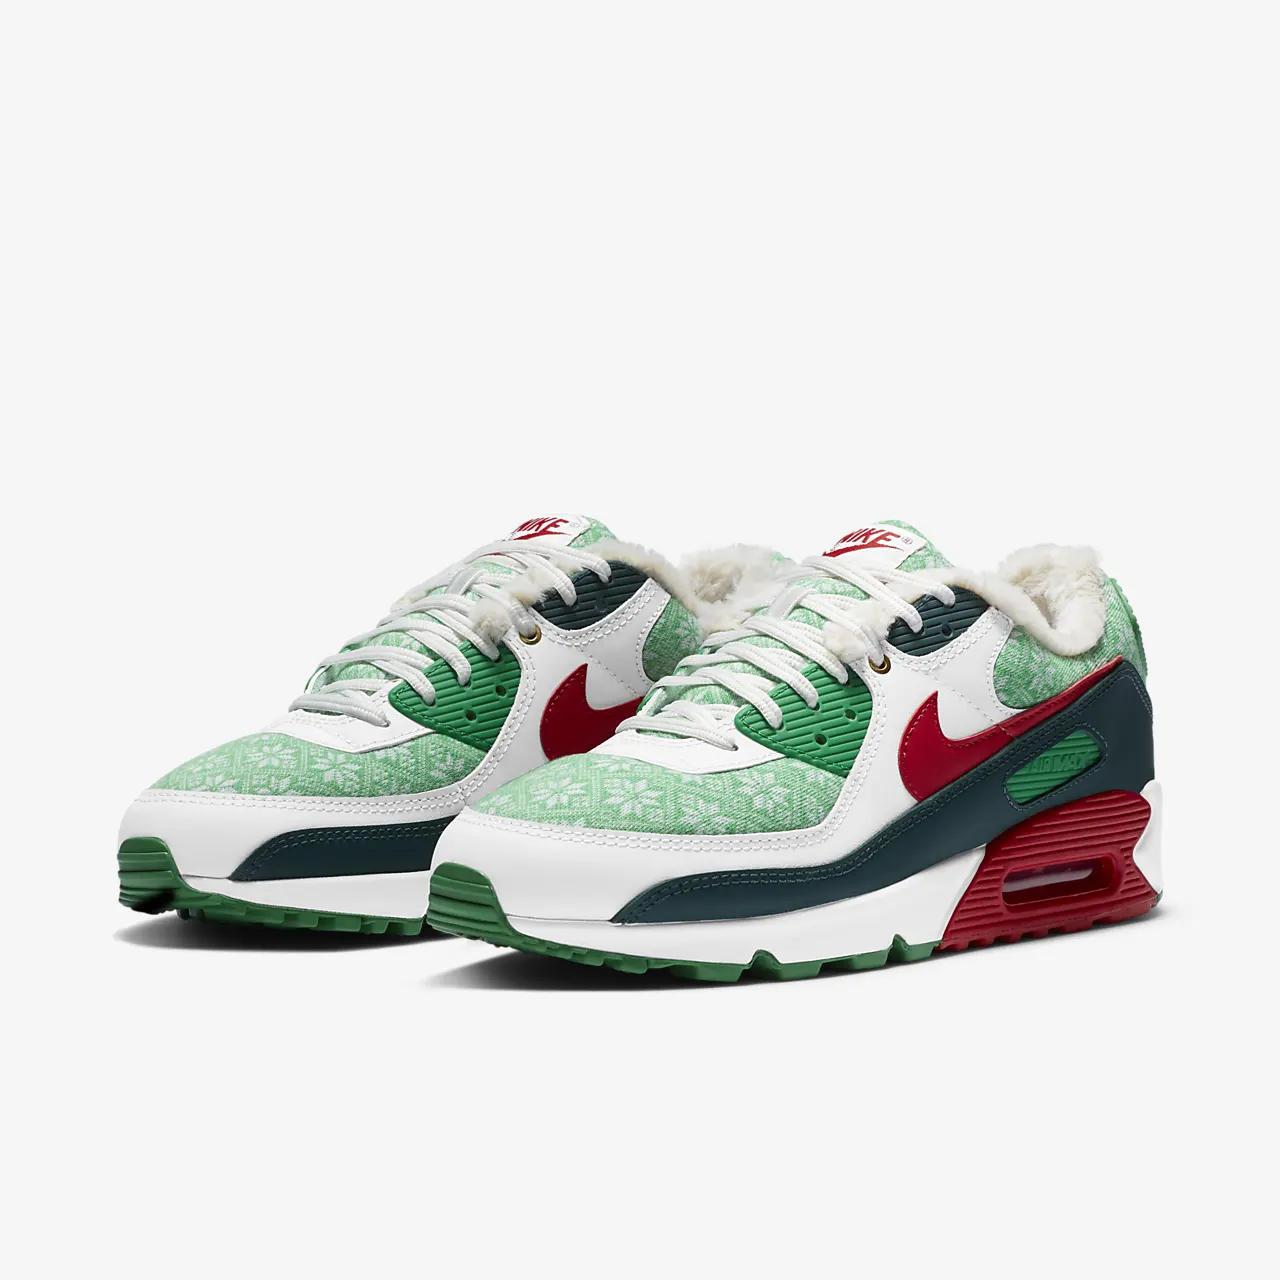 유럽직배송 나이키 NIKE Nike Air Max 90 Men's Shoe DC1607-100